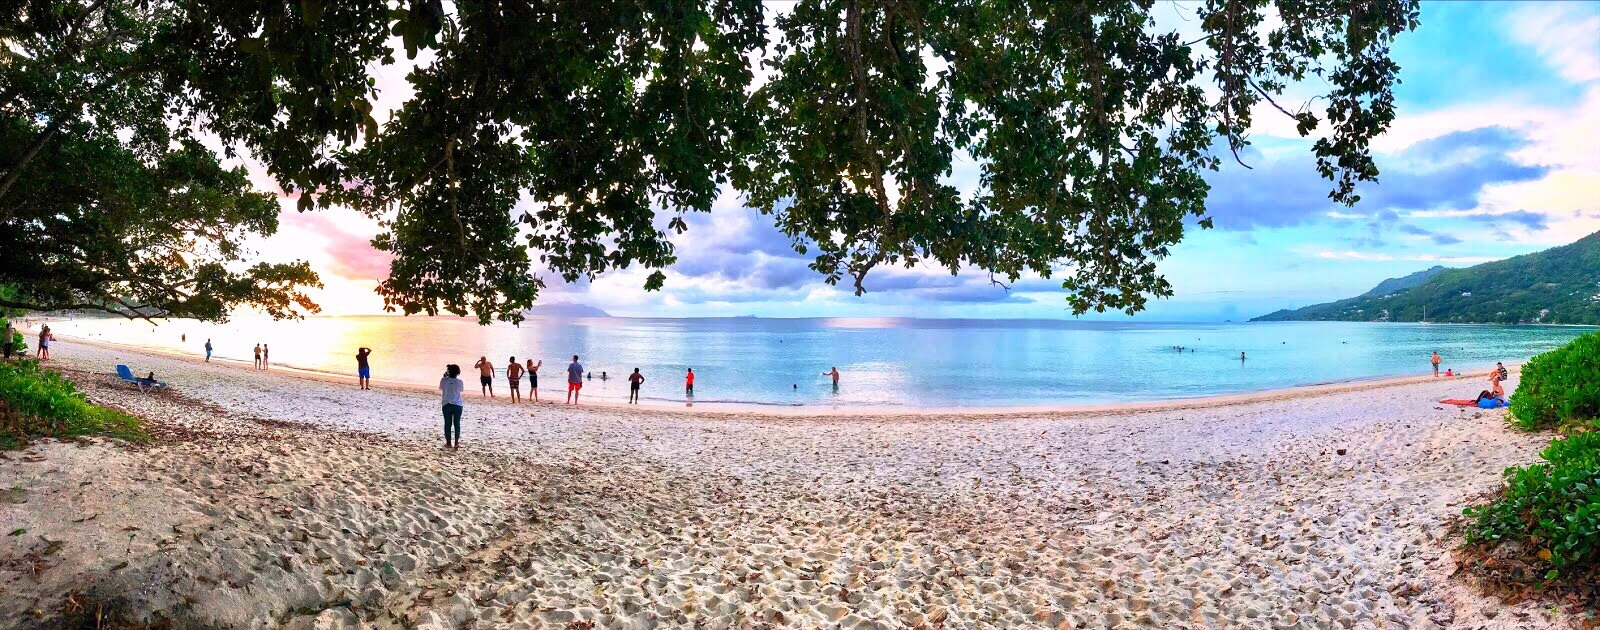 Panorama View of Beau Vallon Beach on Mahé Island, Seychelles